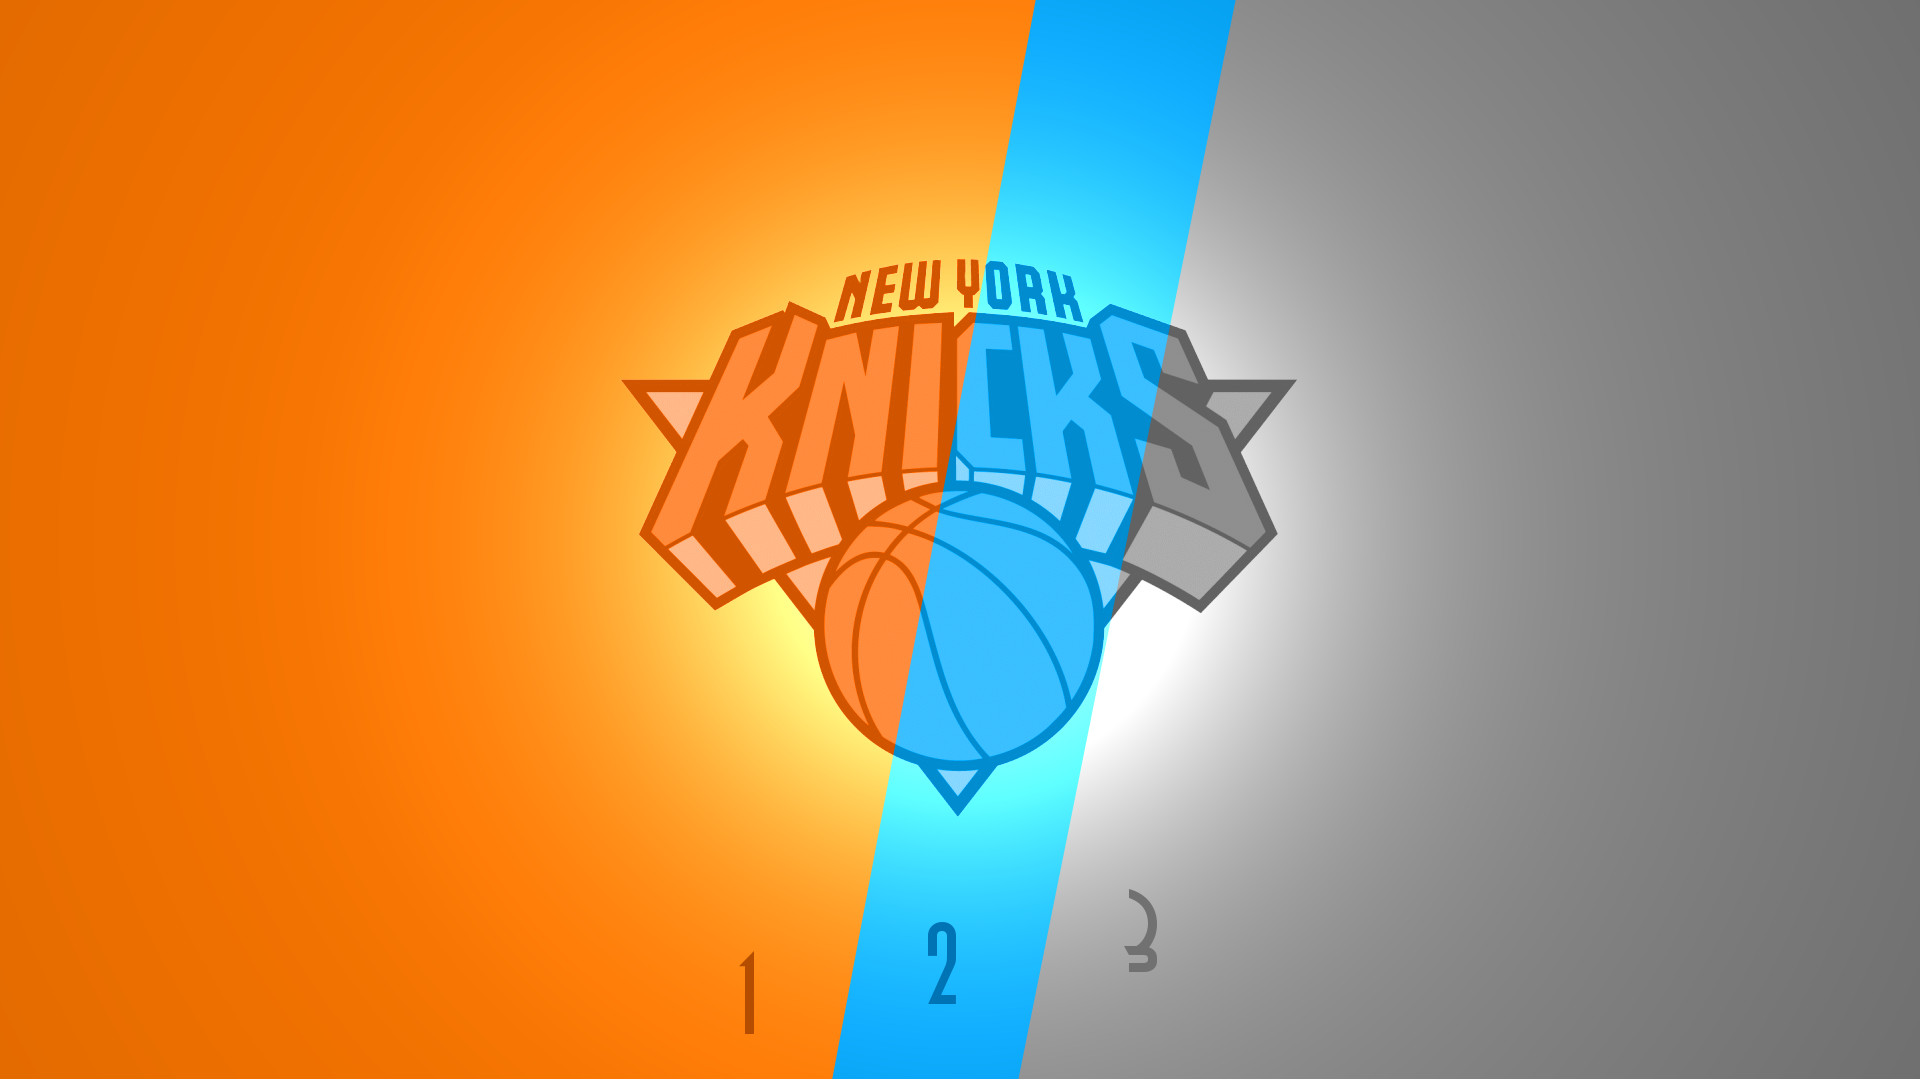 1920x1080 New York Knicks by legosz New York Knicks by legosz